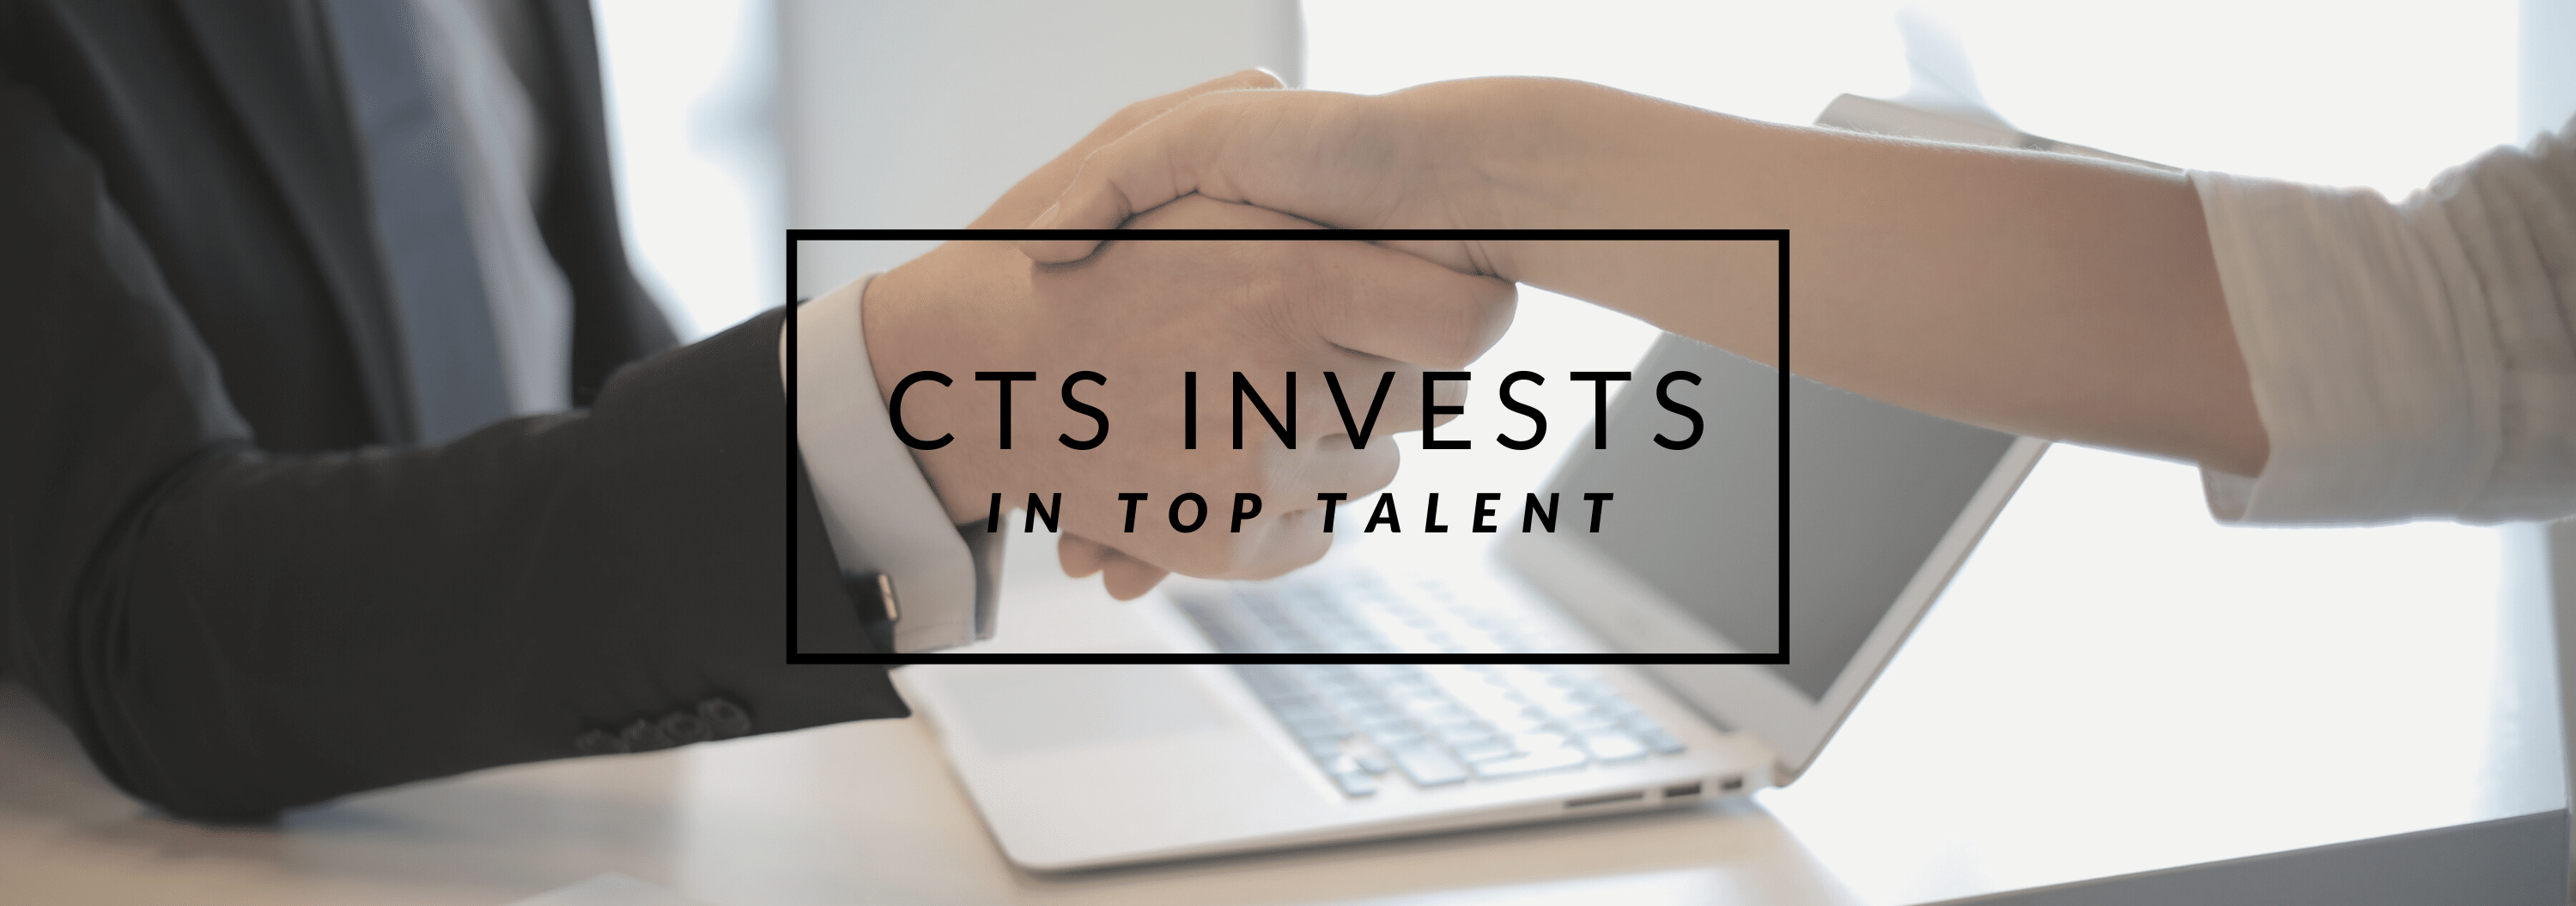 CTS Invests in Top Talent